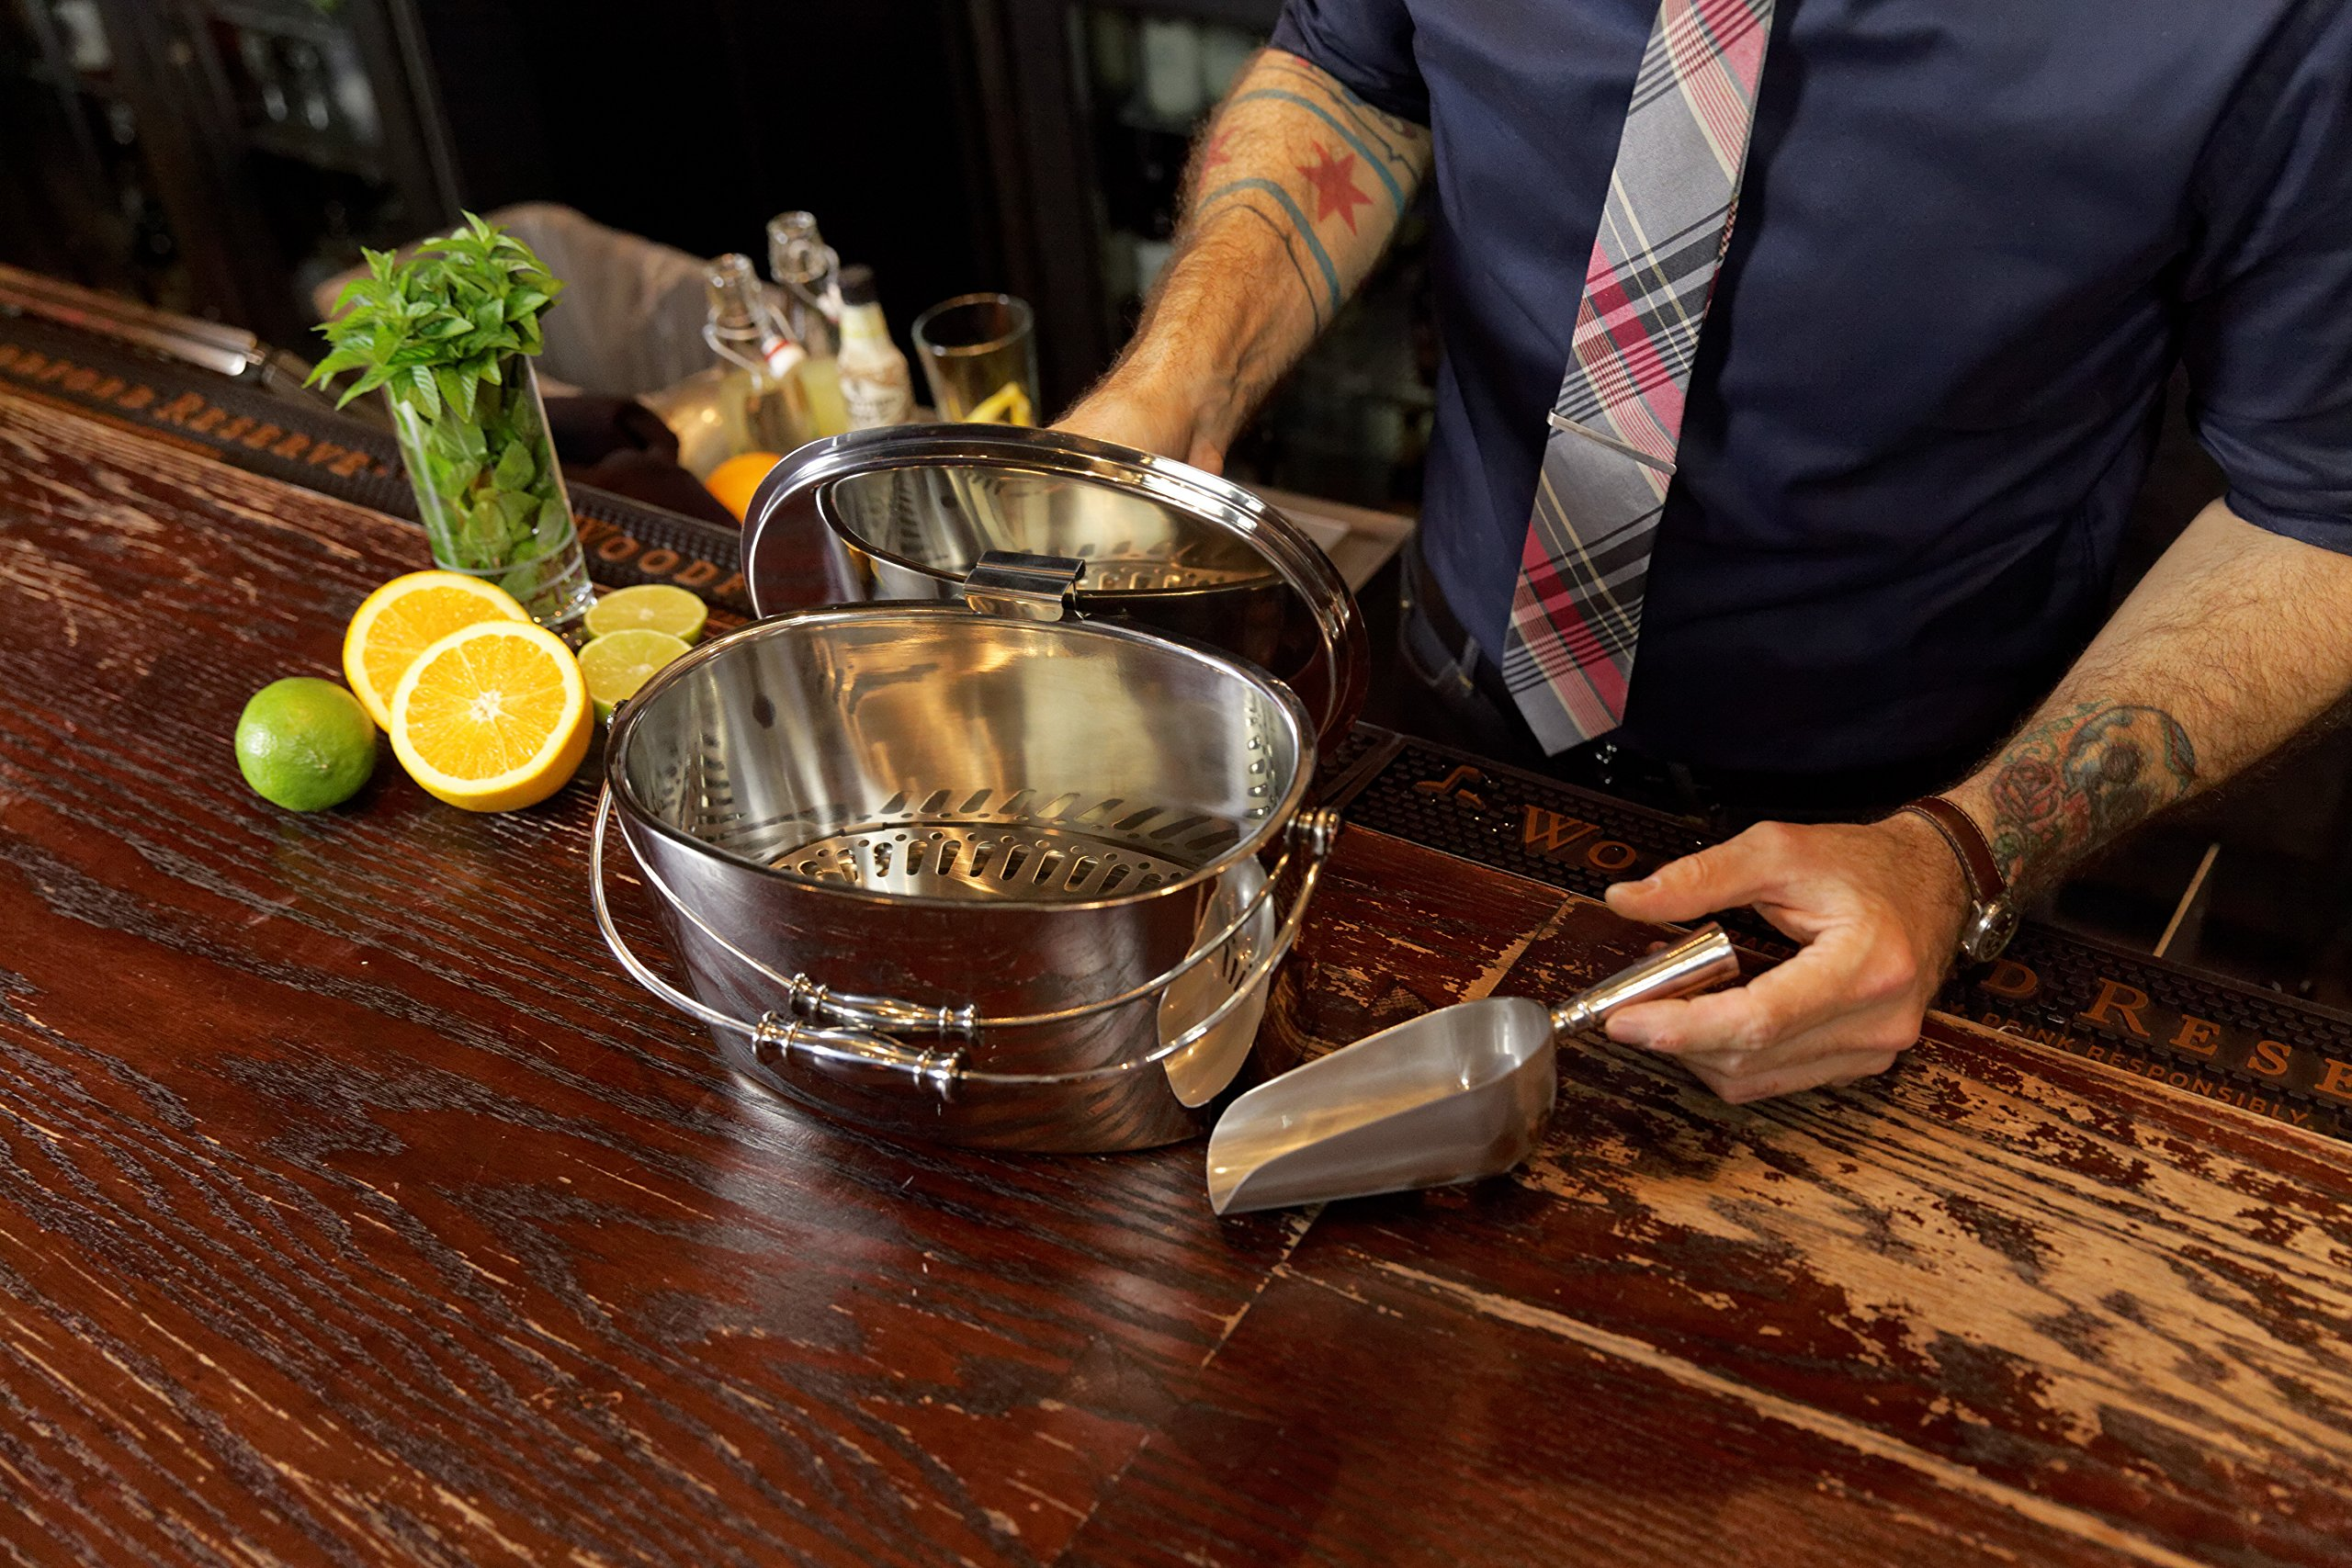 Crafthouse by Fortessa Professional Metal Barware/Bar Tools by Charles Joly, 12'' x 5.25'' Stainless Steel Ice Bucket with Handle and Drain Tray by Crafthouse by Fortessa (Image #3)